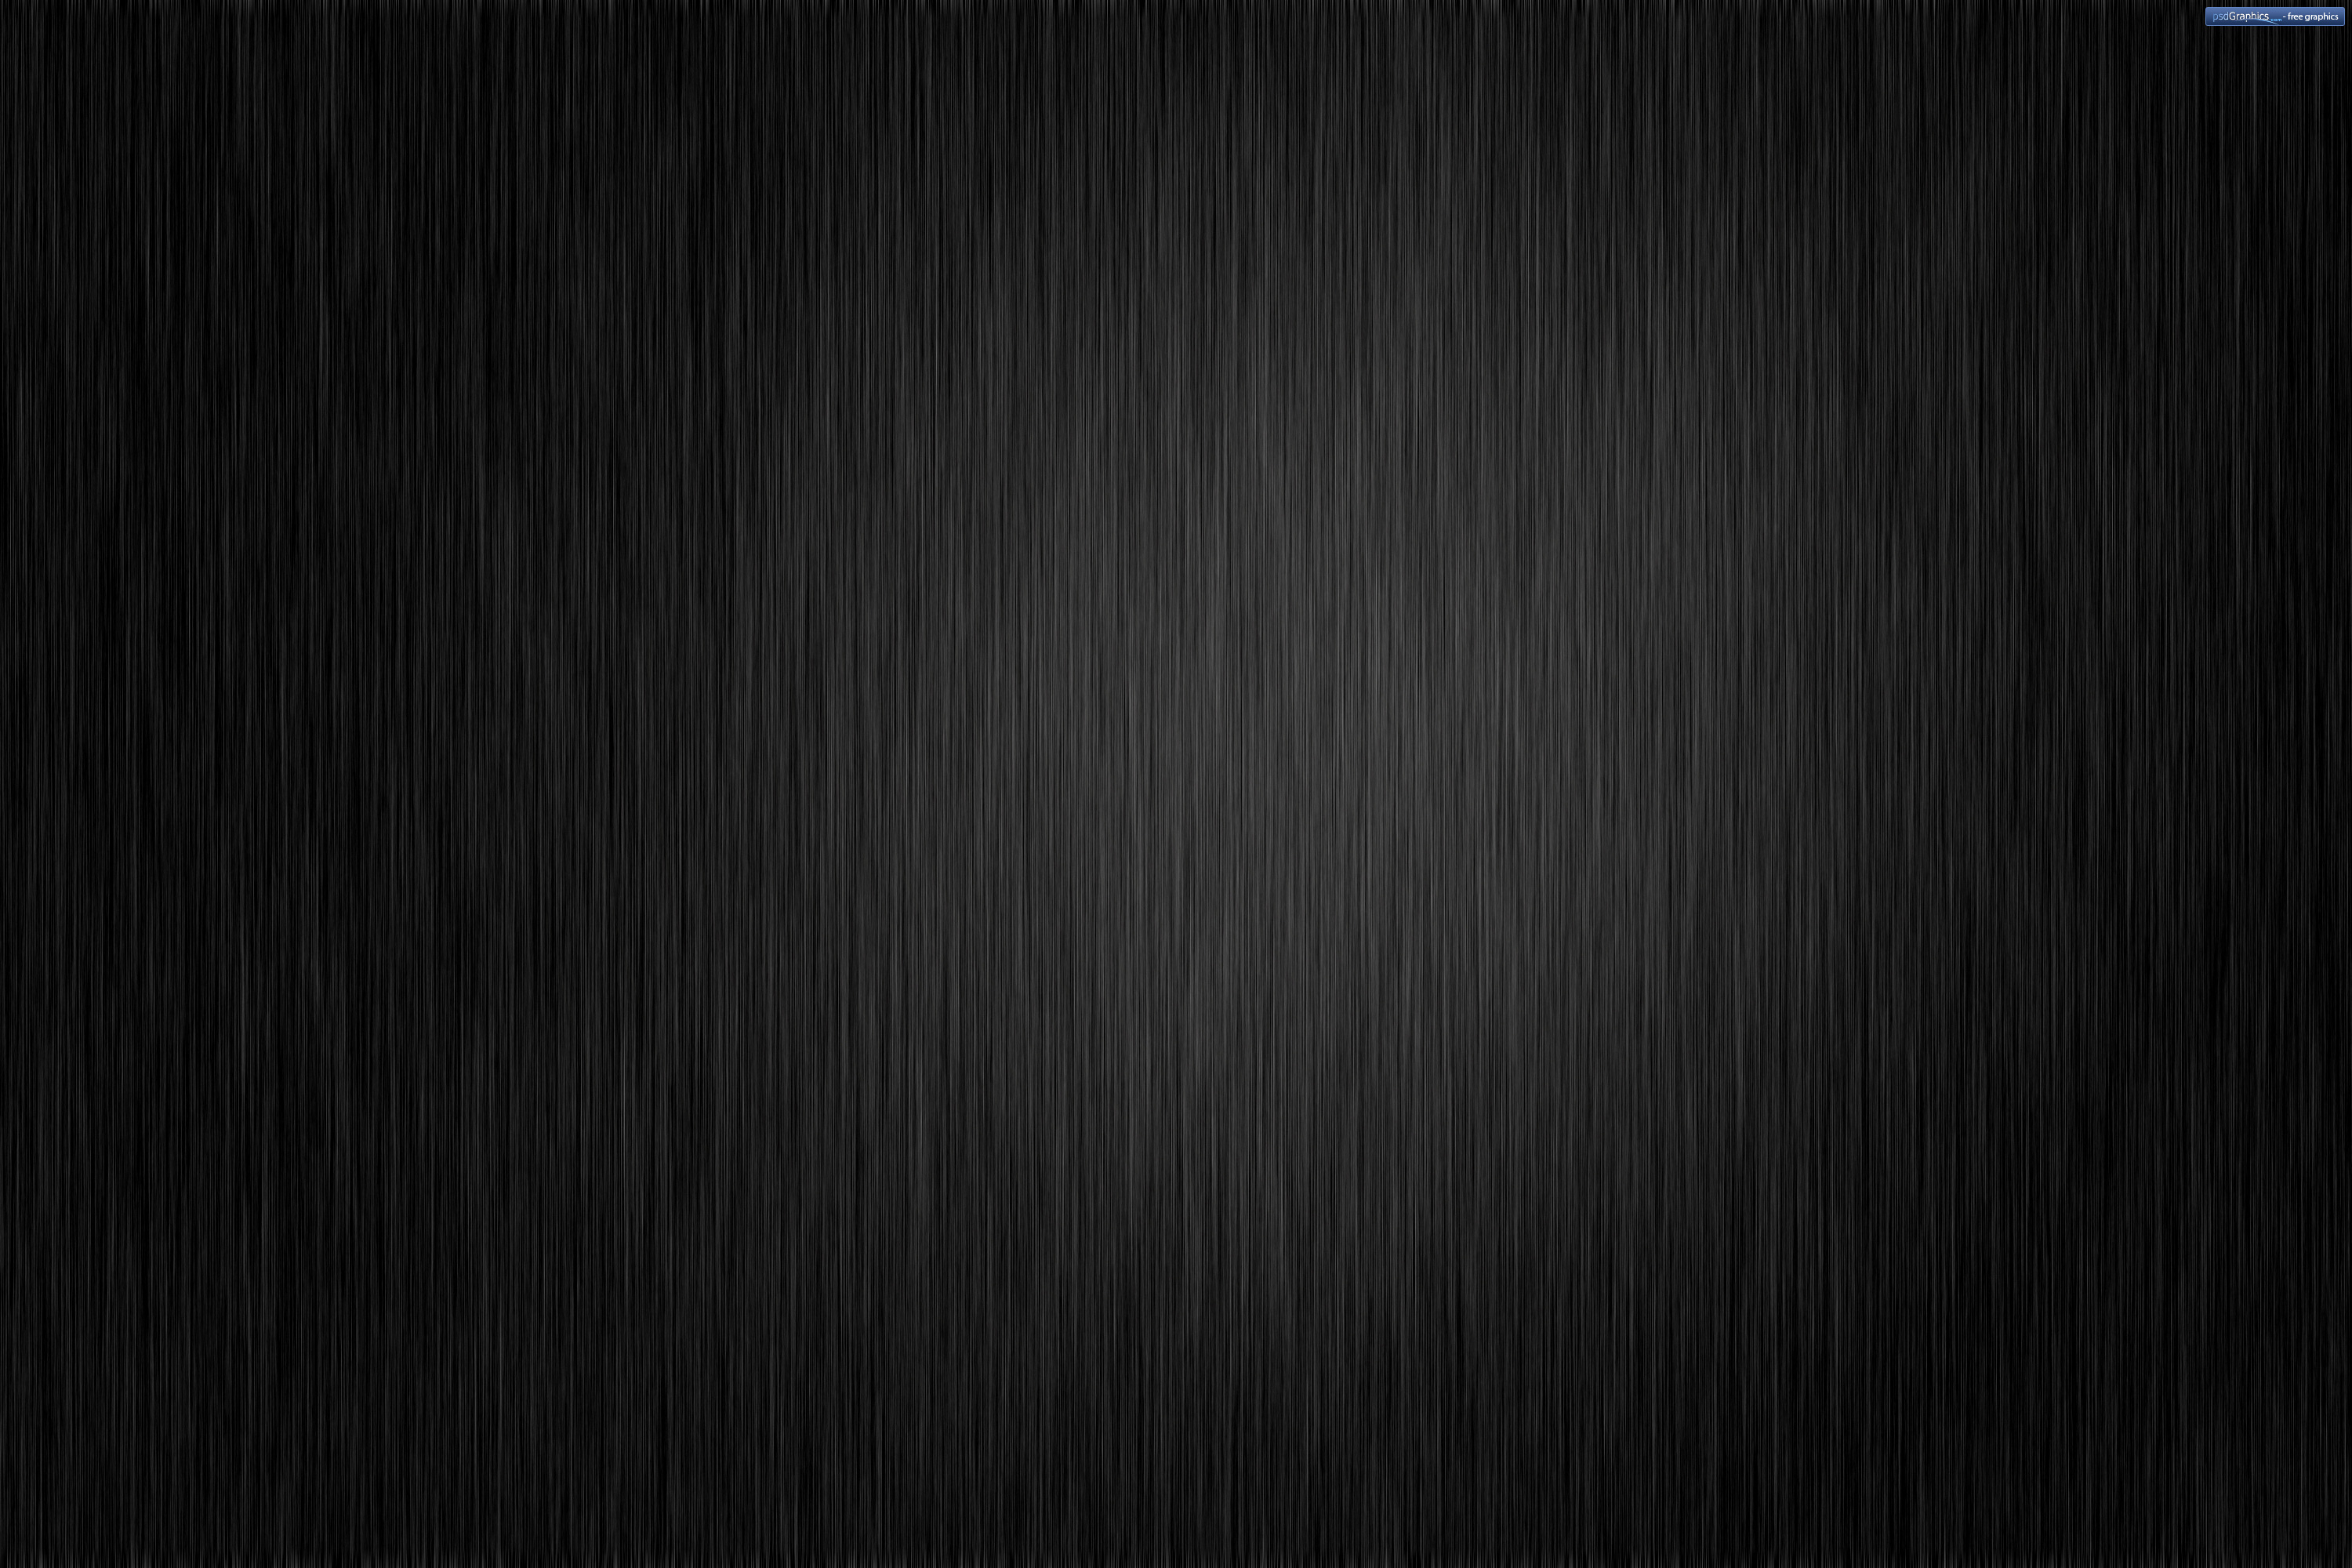 backgrounds 3000x2000px wallpapers black metal Black Background 3000x2000